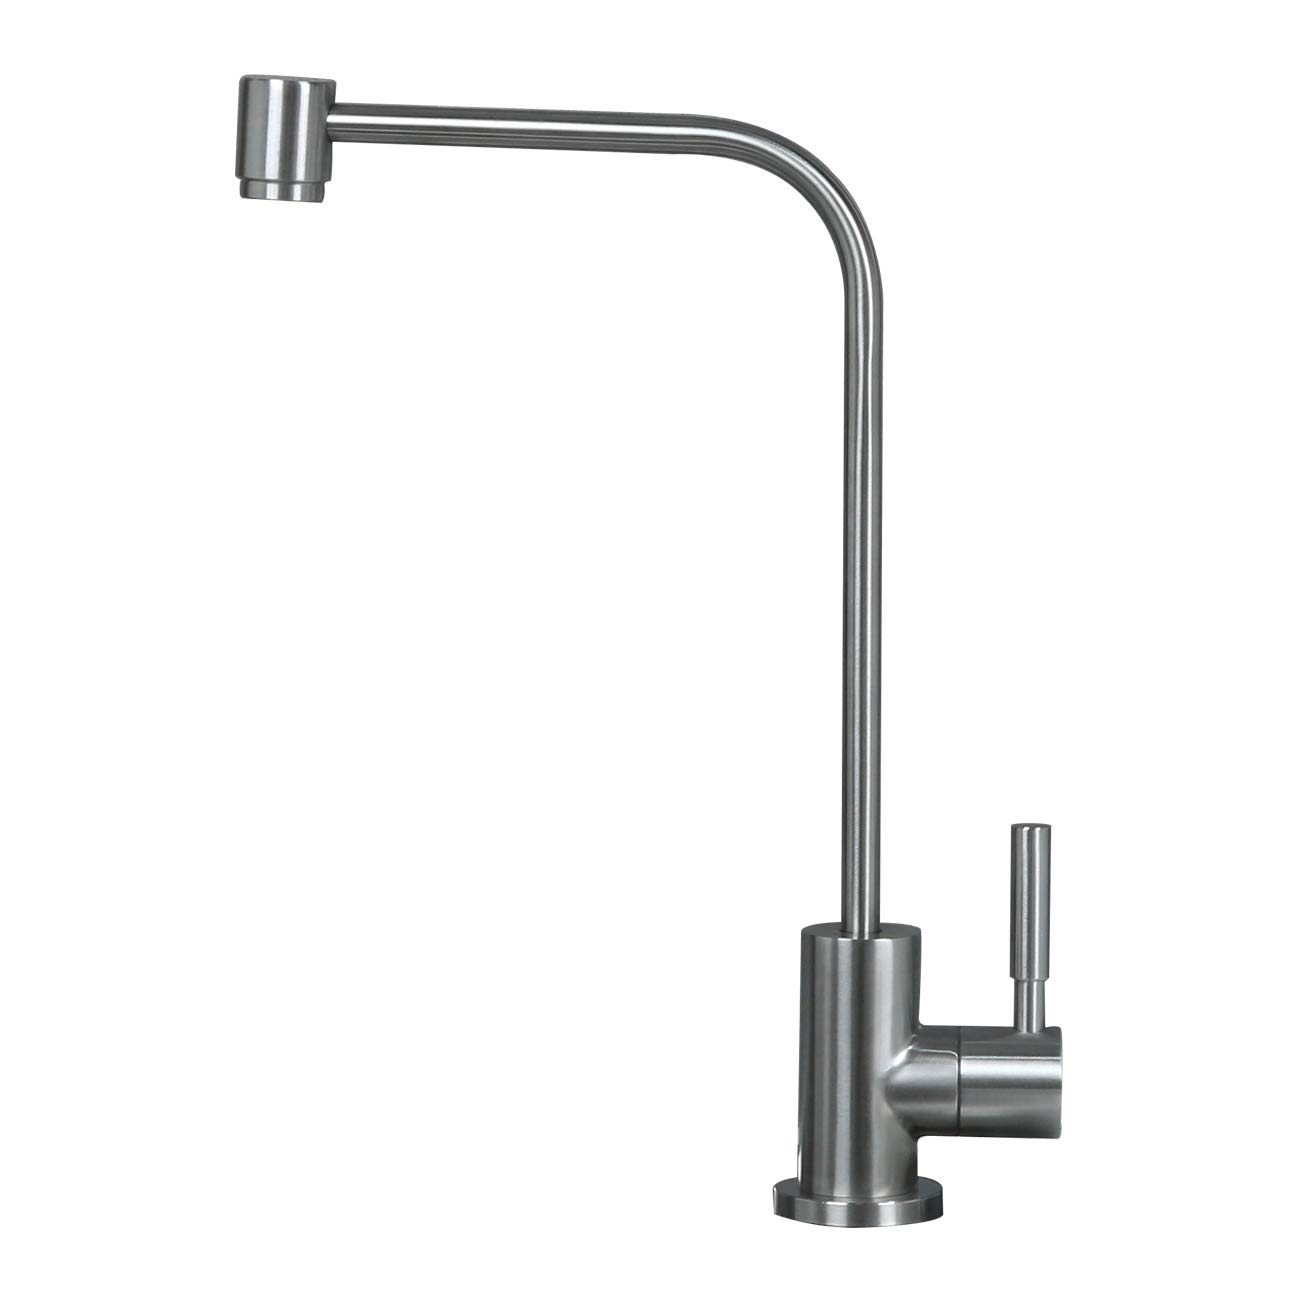 Stainless Steel Kitchen bar Sink Drinking Water filter Faucet, Fits all reverse osmosis water filtration system, Lead-Free, Brushed, Single Handle